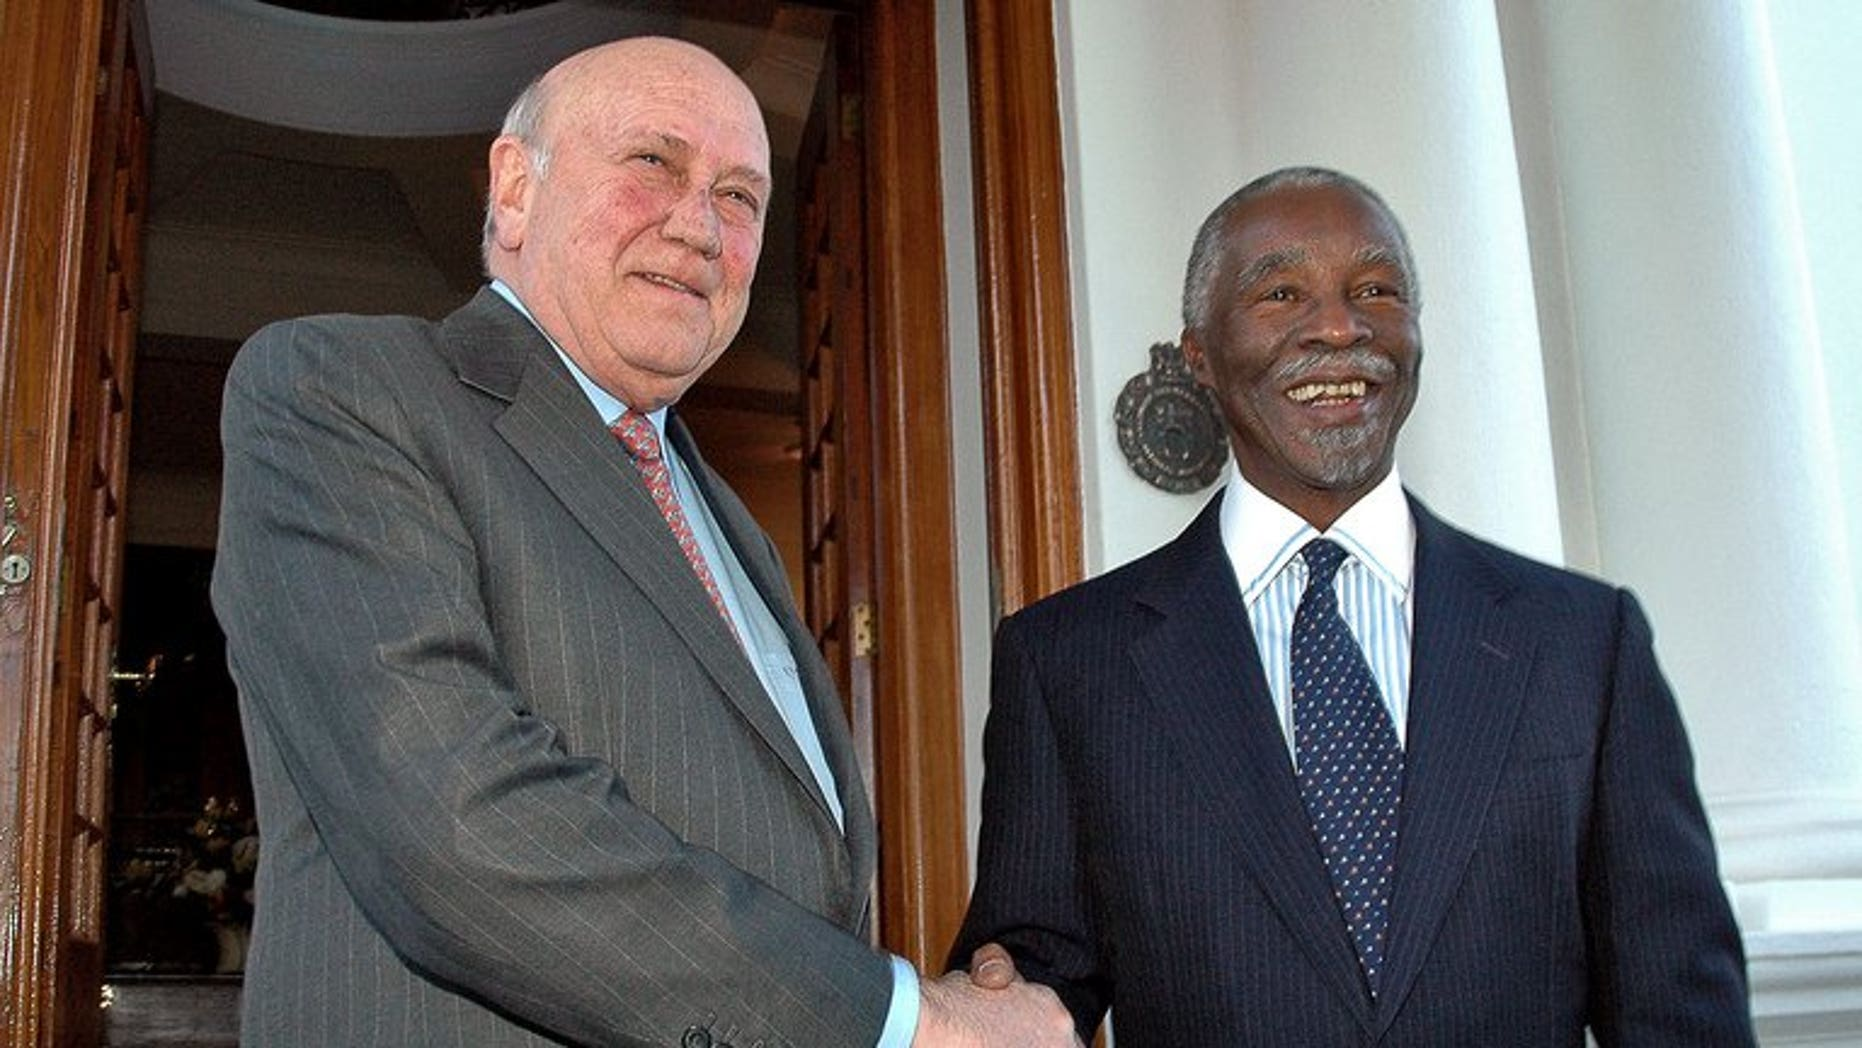 Former South African President FW De Klerk (left) is pictured with then president Thabo Mbeki in Pretoria on 22 May 2007. De Klerk will cut short a visit to Europe because of the ailing health of his co-Nobel prize winner Nelson Mandela, his foundation said.